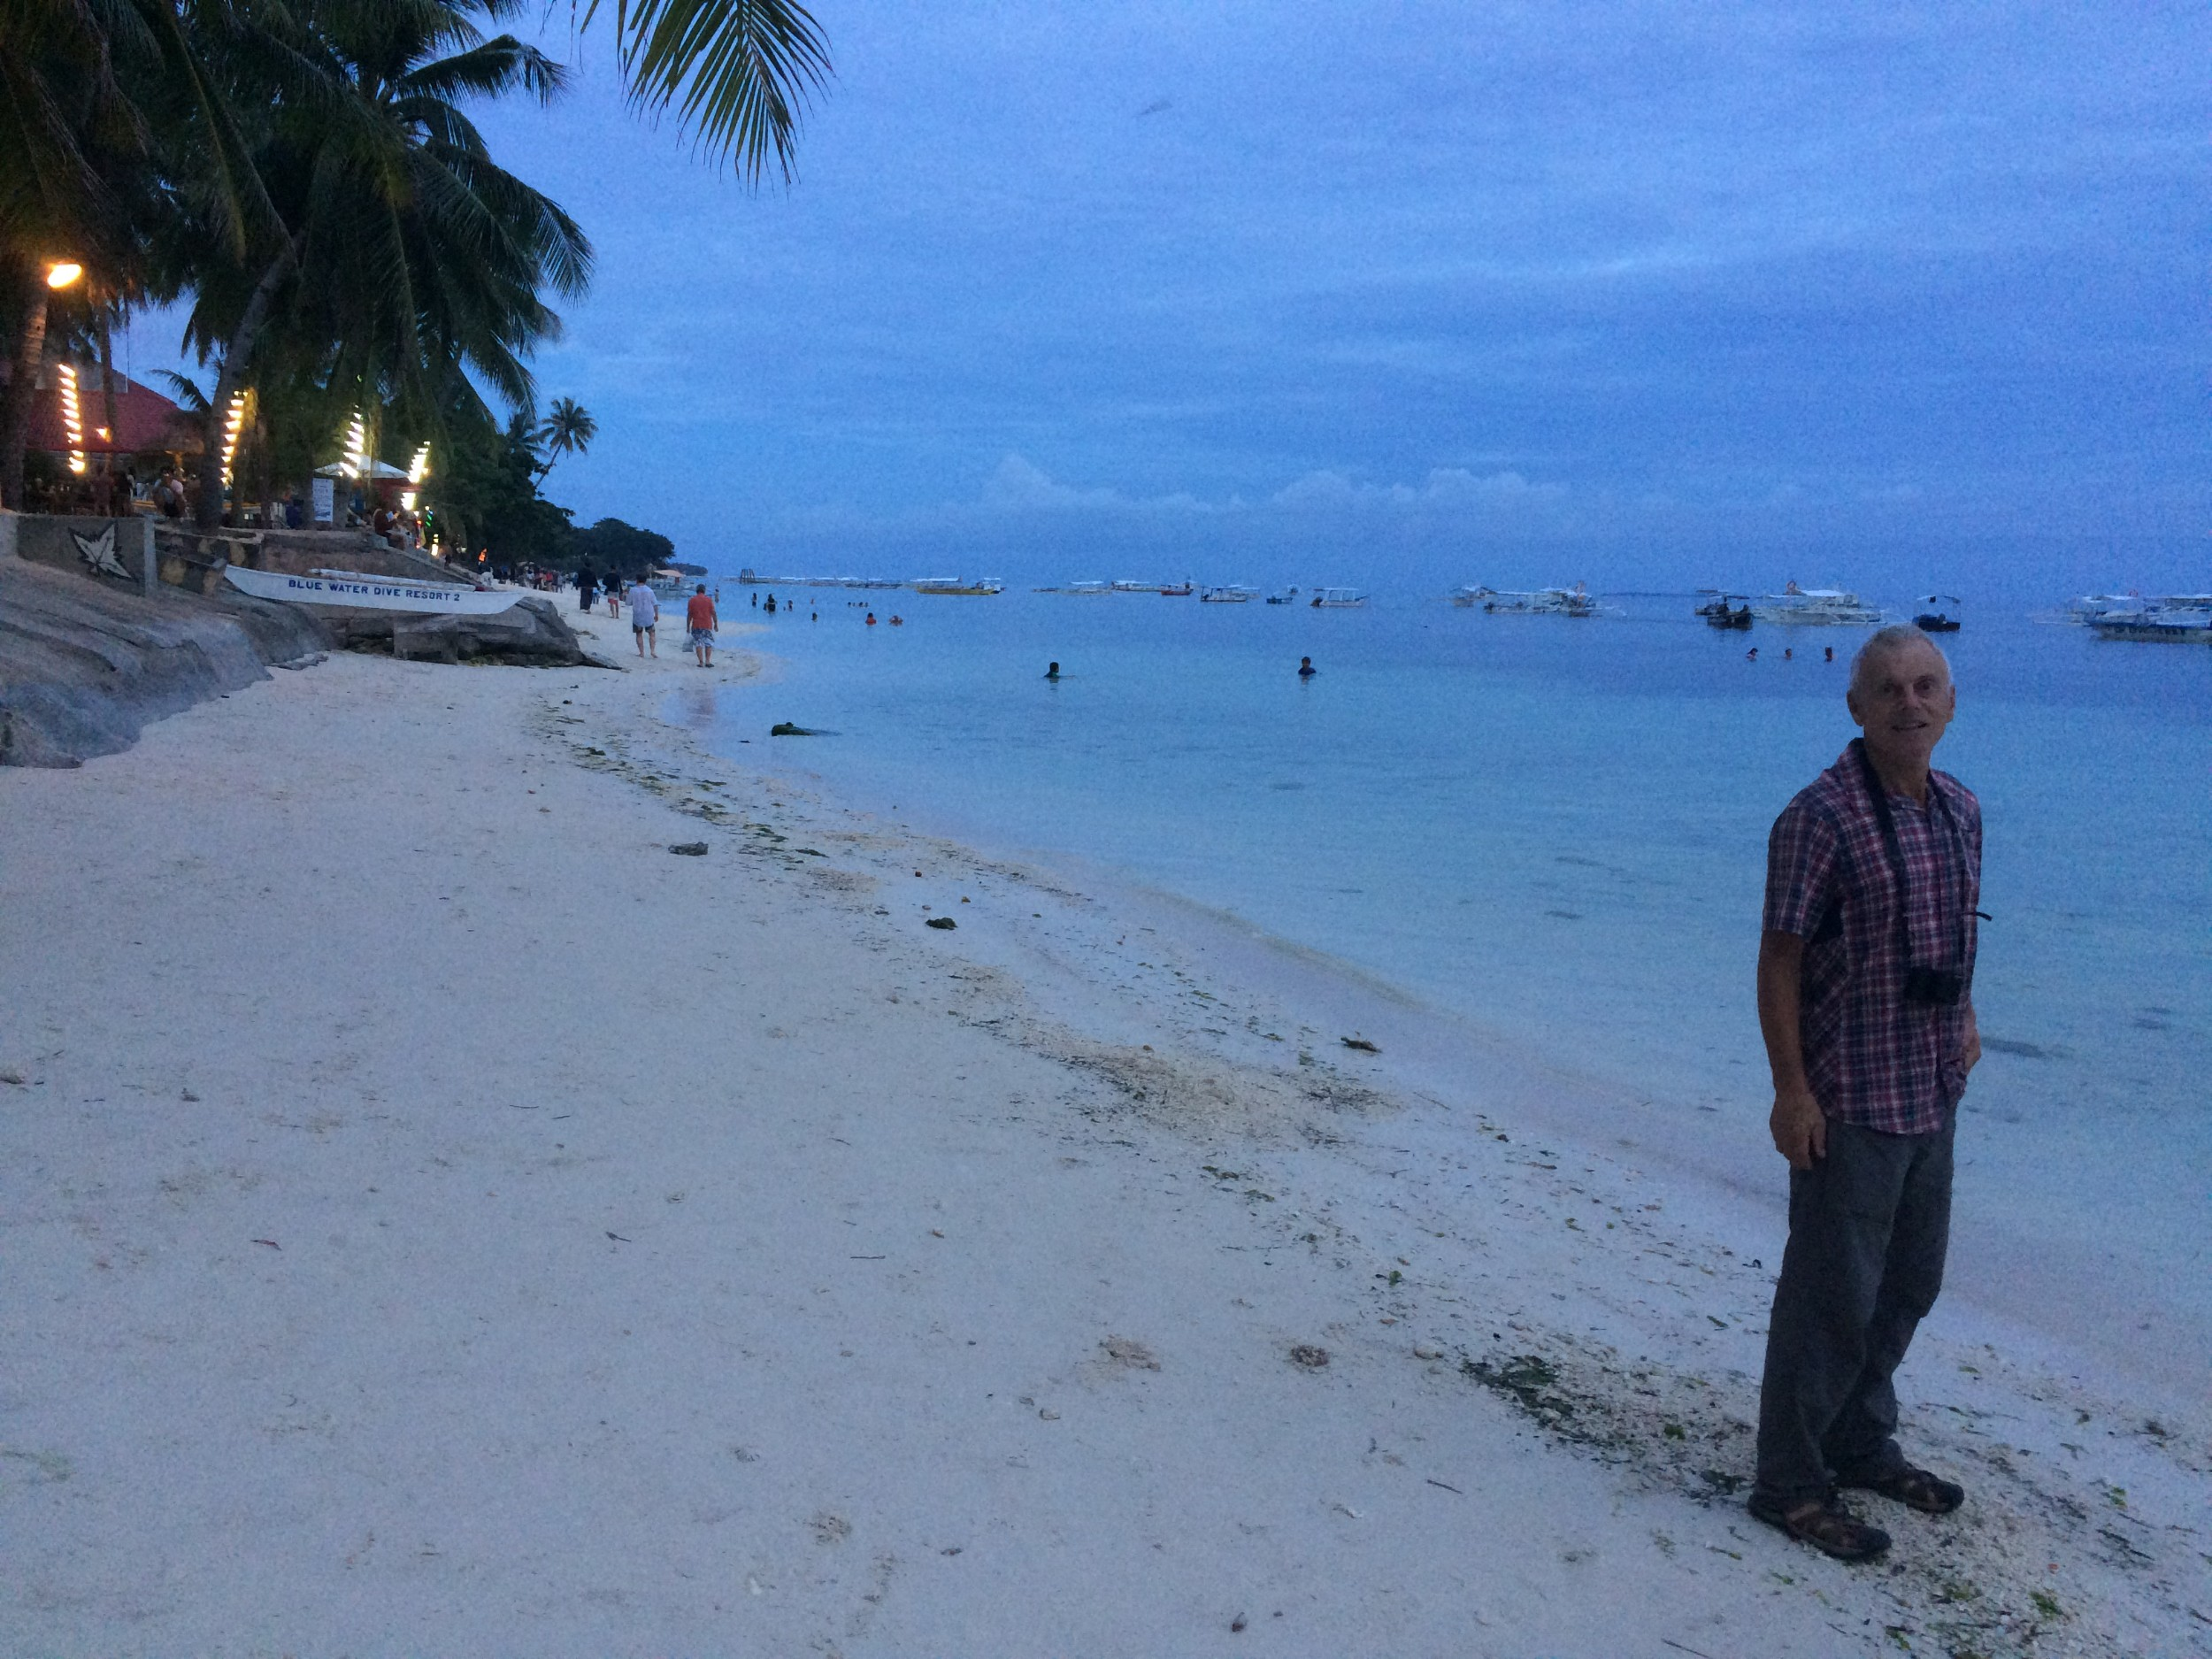 Alona Beach at dusk